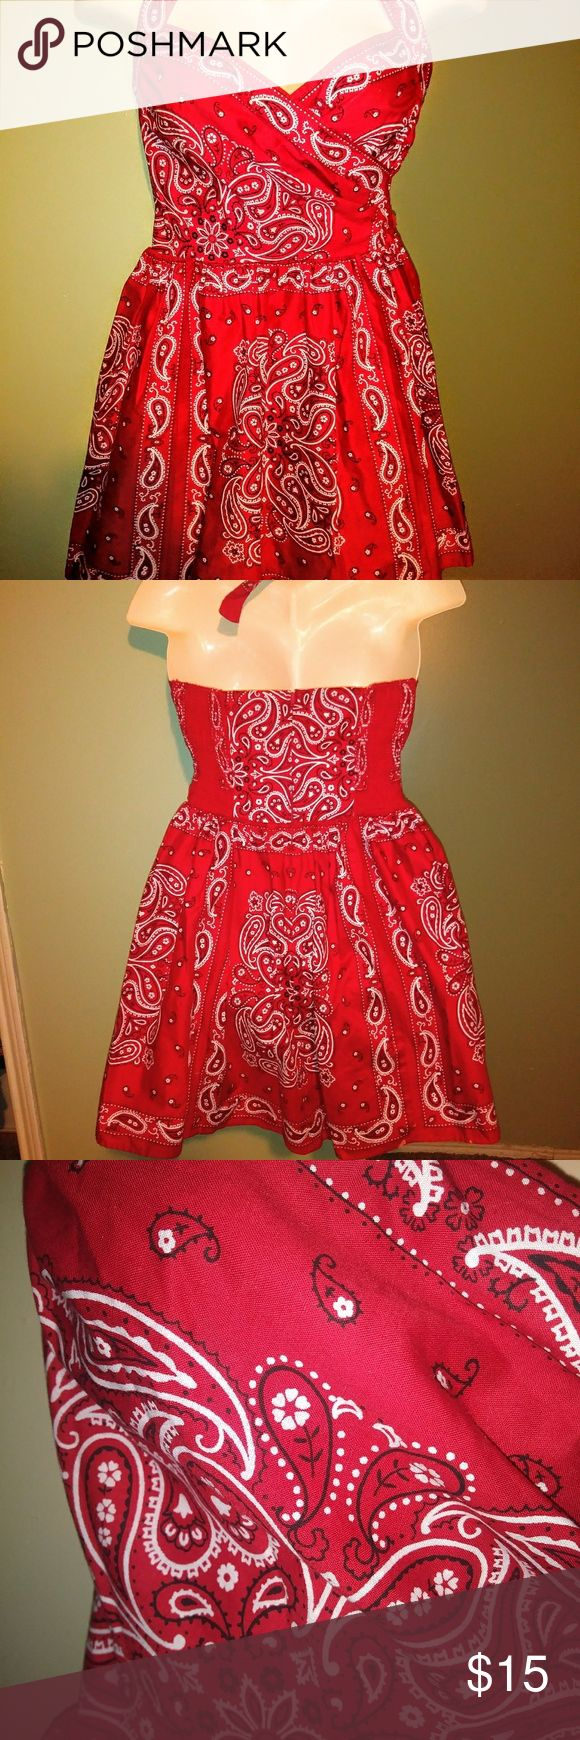 Halter dress size 6 by Laundry Super cute bandana style size 6 with halter tie top laundry  Dresses Backless